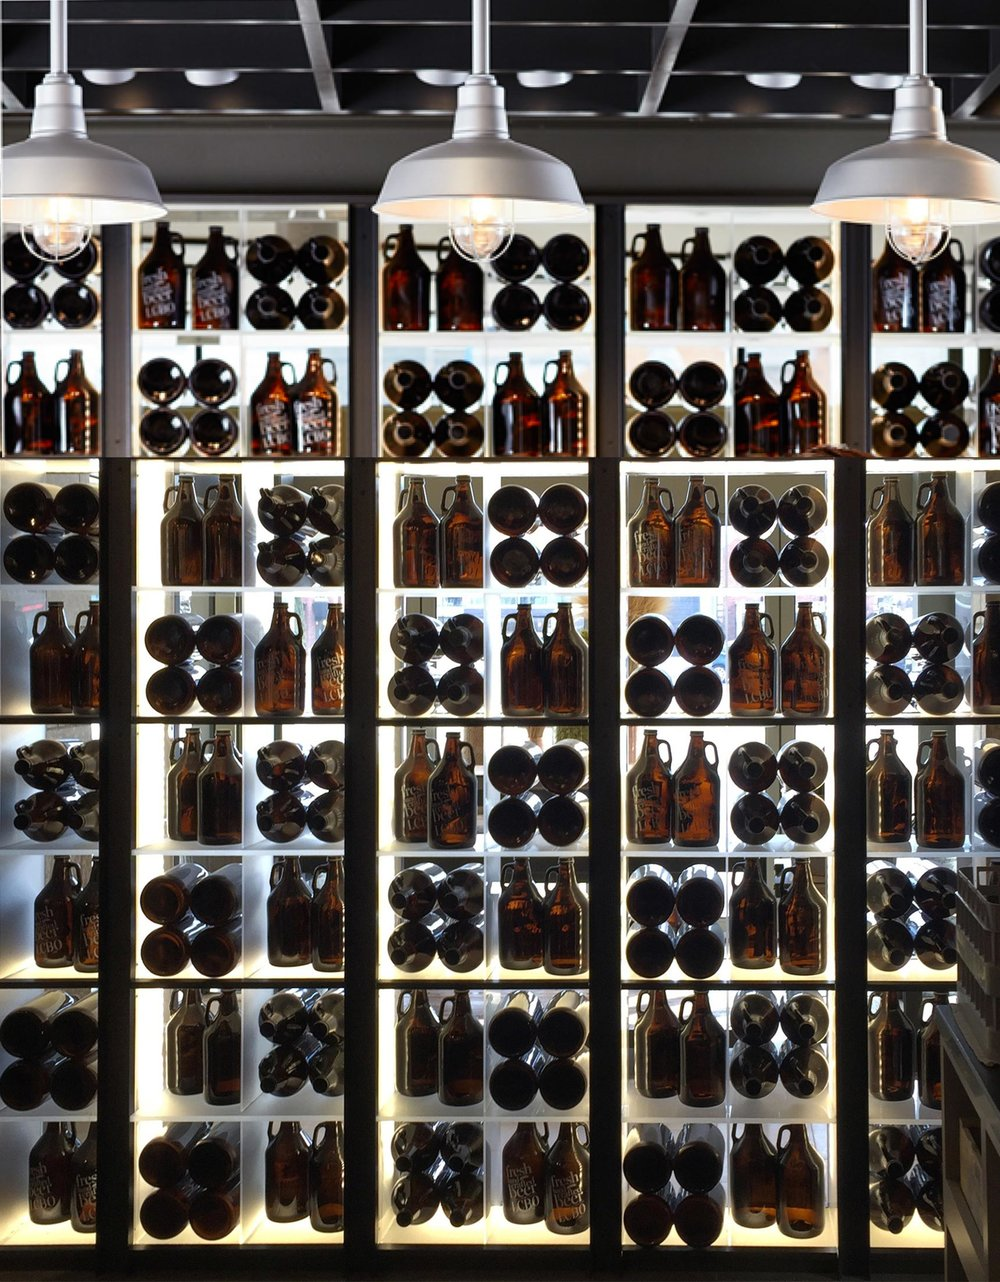 lcbo-station-growler-ads-beer-wall-sputnik-design-partners-toronto.jpg